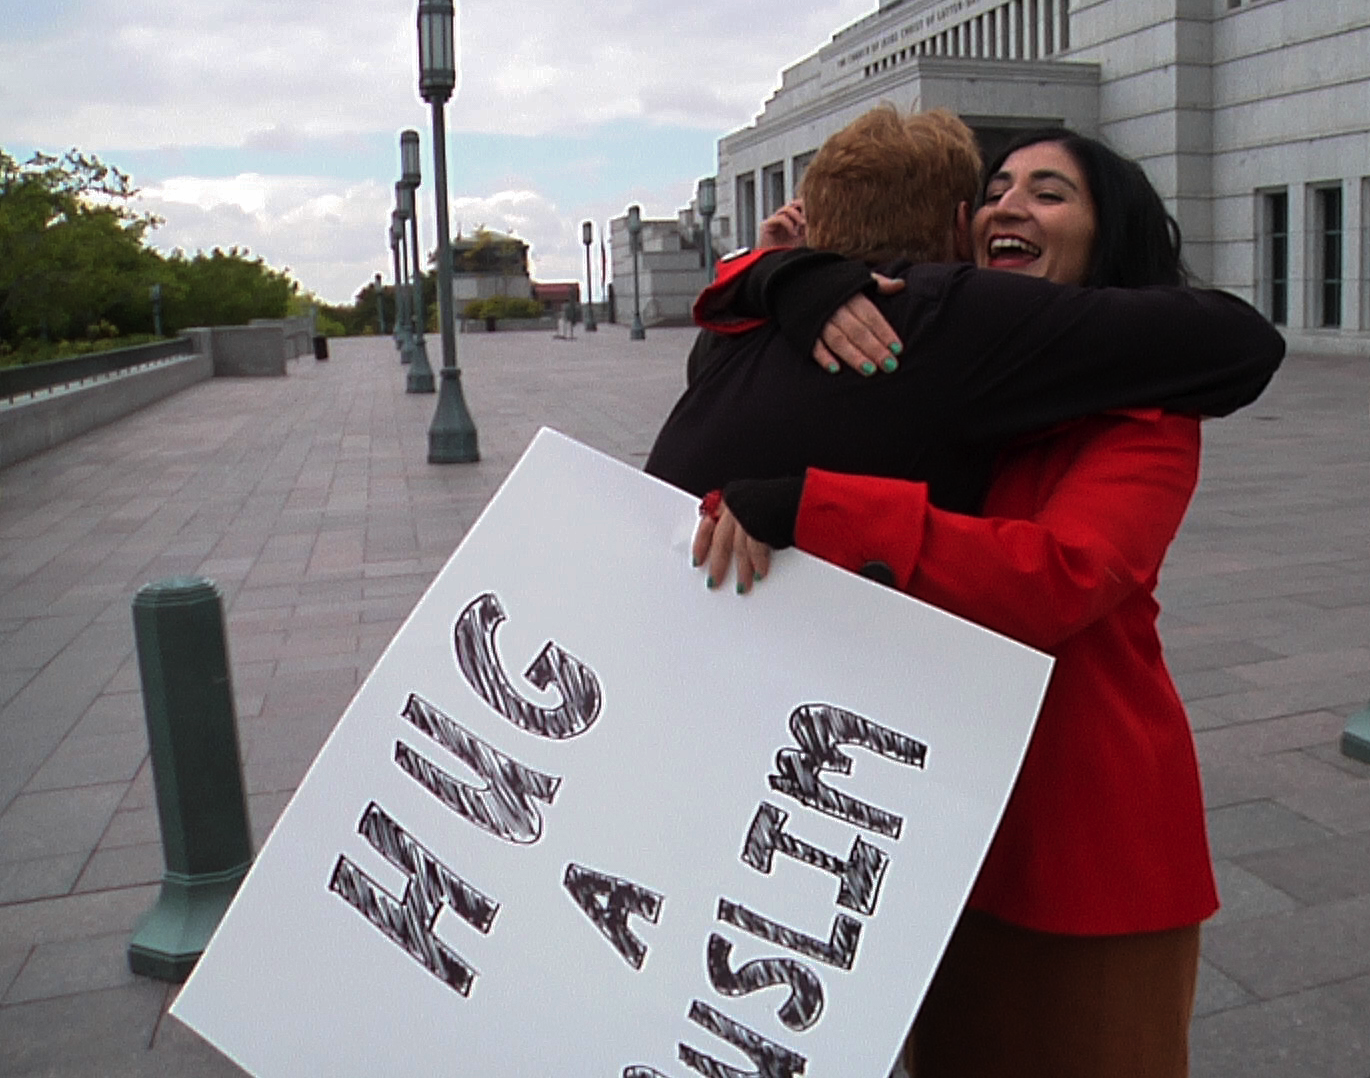 The Muslims Are Coming!: Hug a Muslim